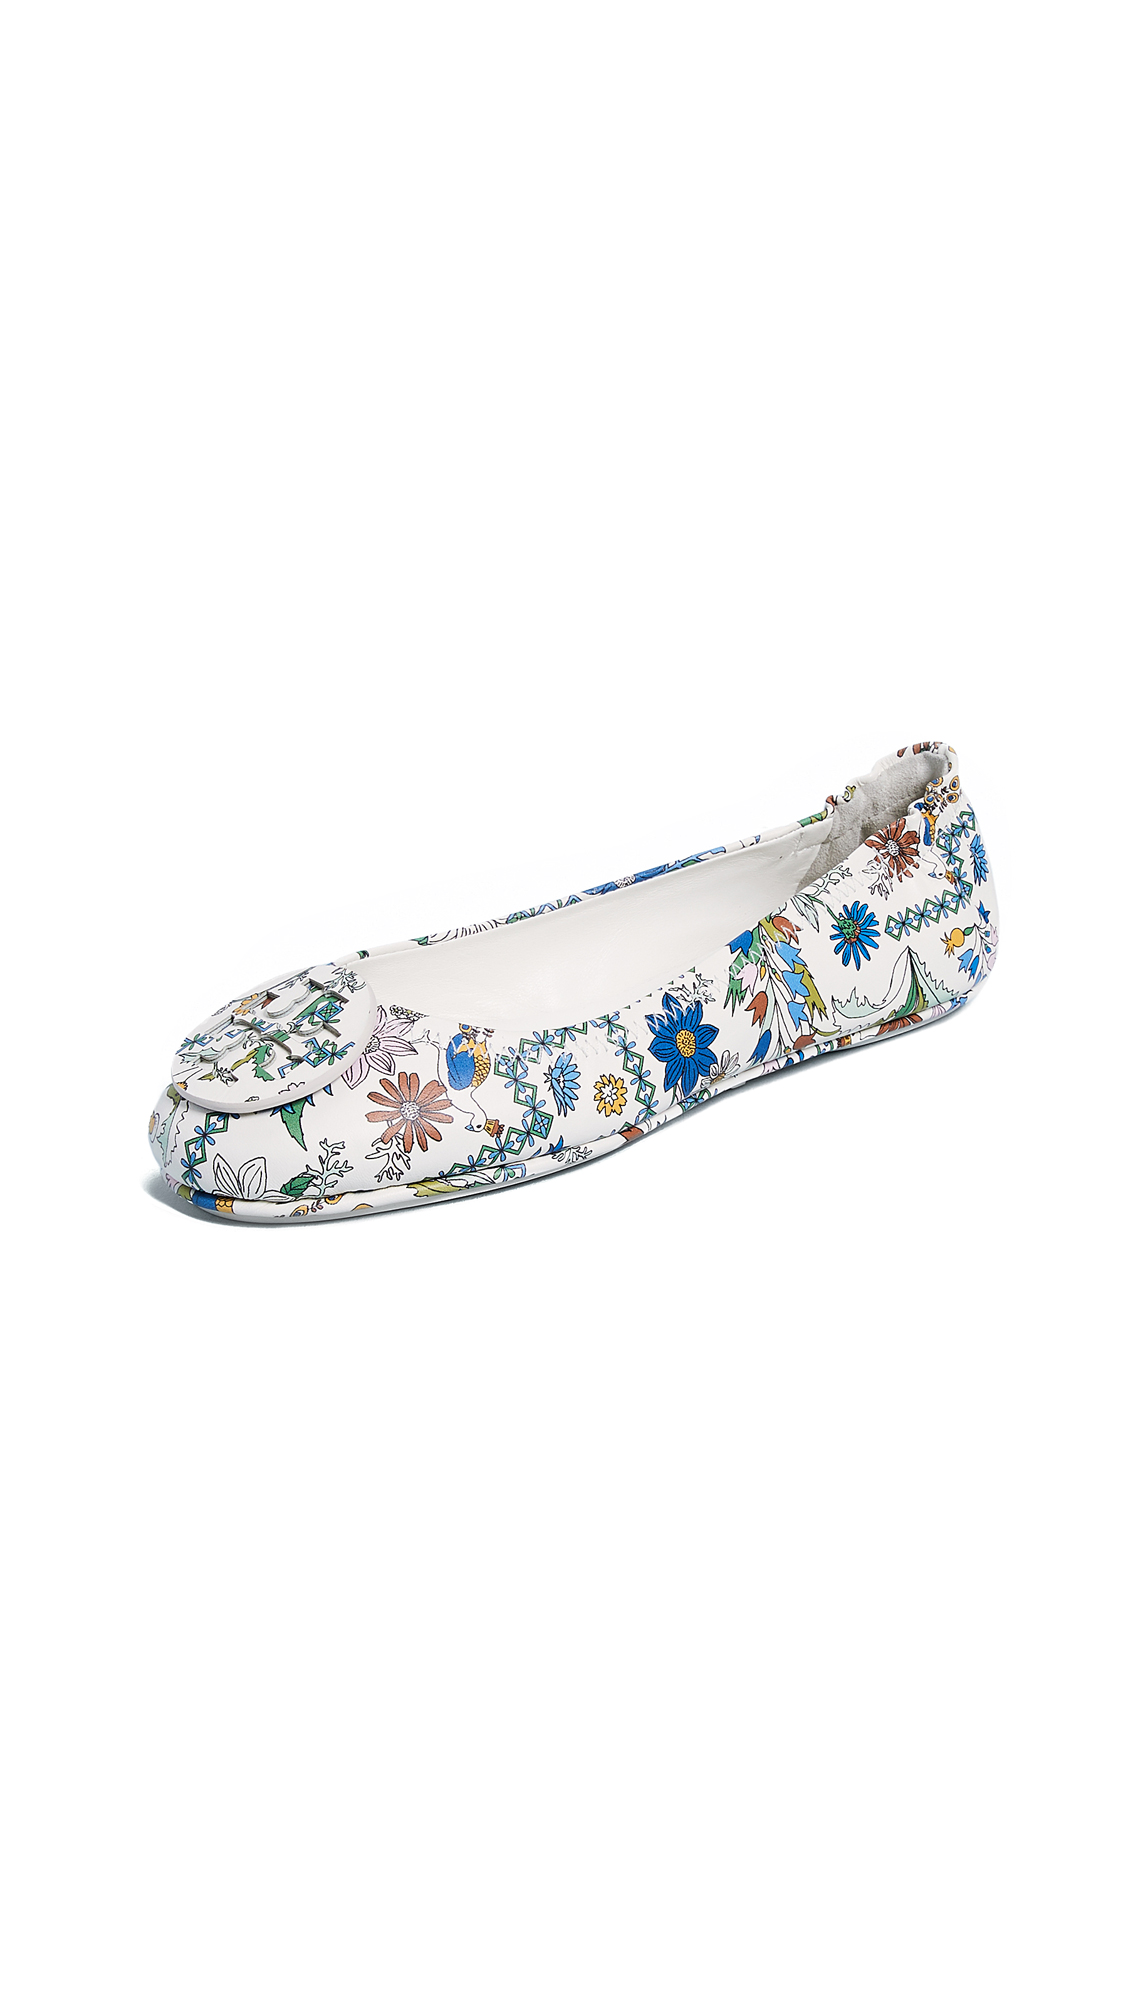 Tory Burch Minnie Travel Ballet Flats - Meadow Sweet